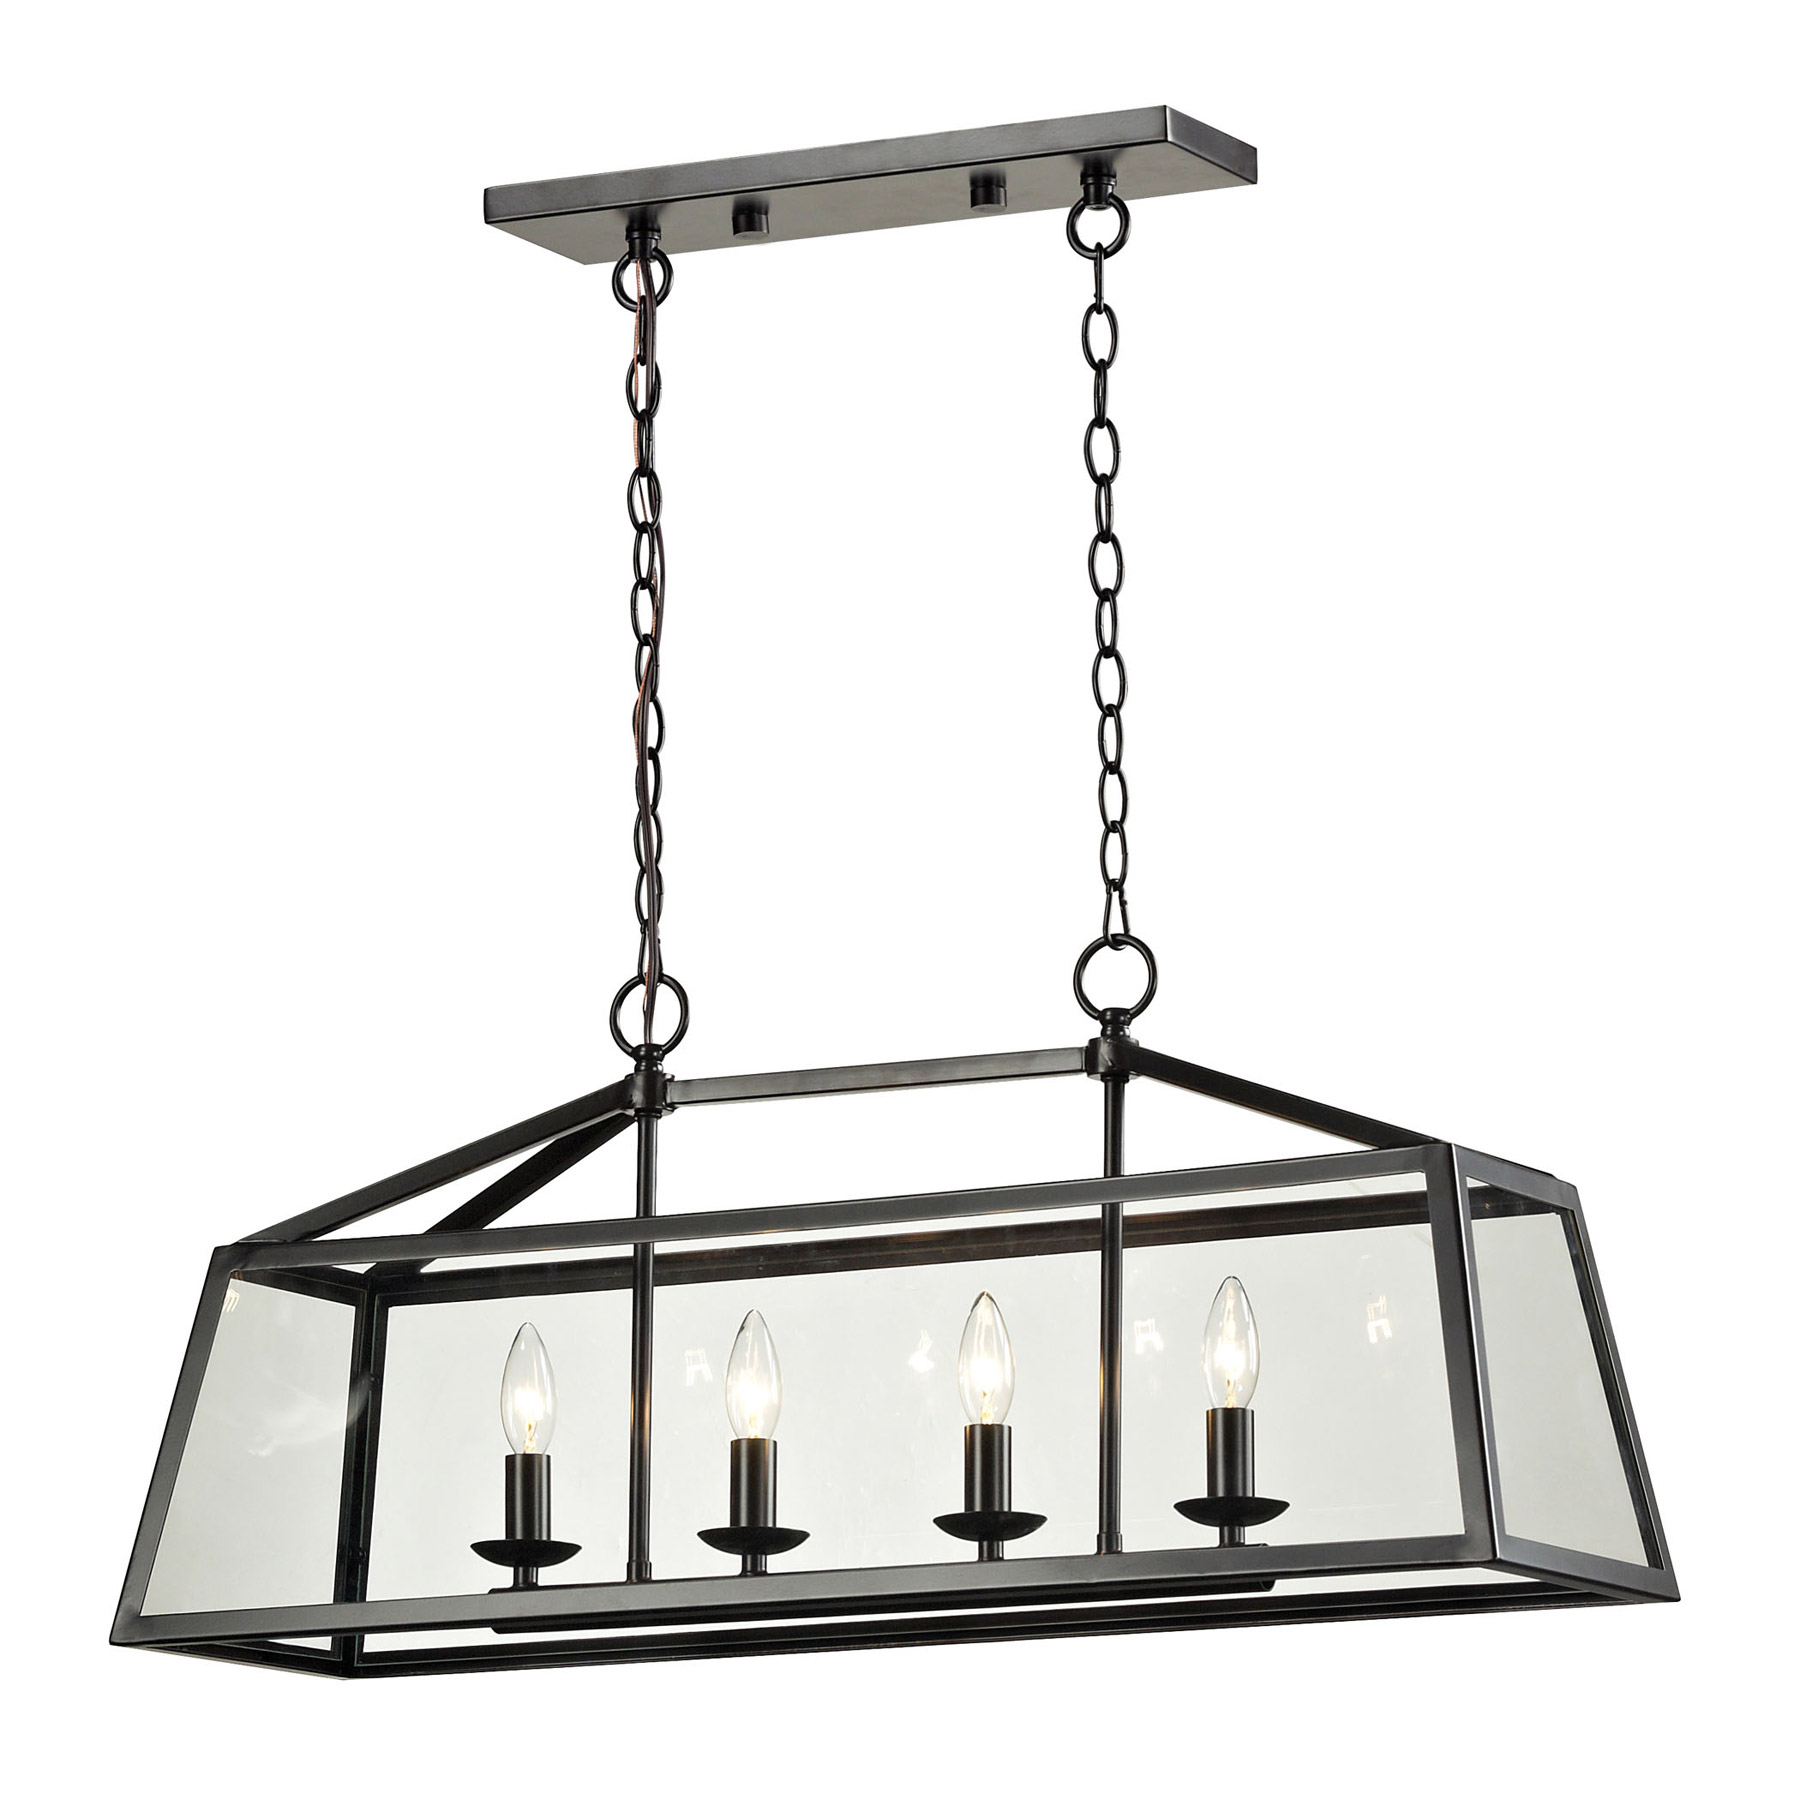 Elk Lighting 31508 4 Alanna Light Rectangular Chandelier In Oil Rubbed Bronze And Clear Glass